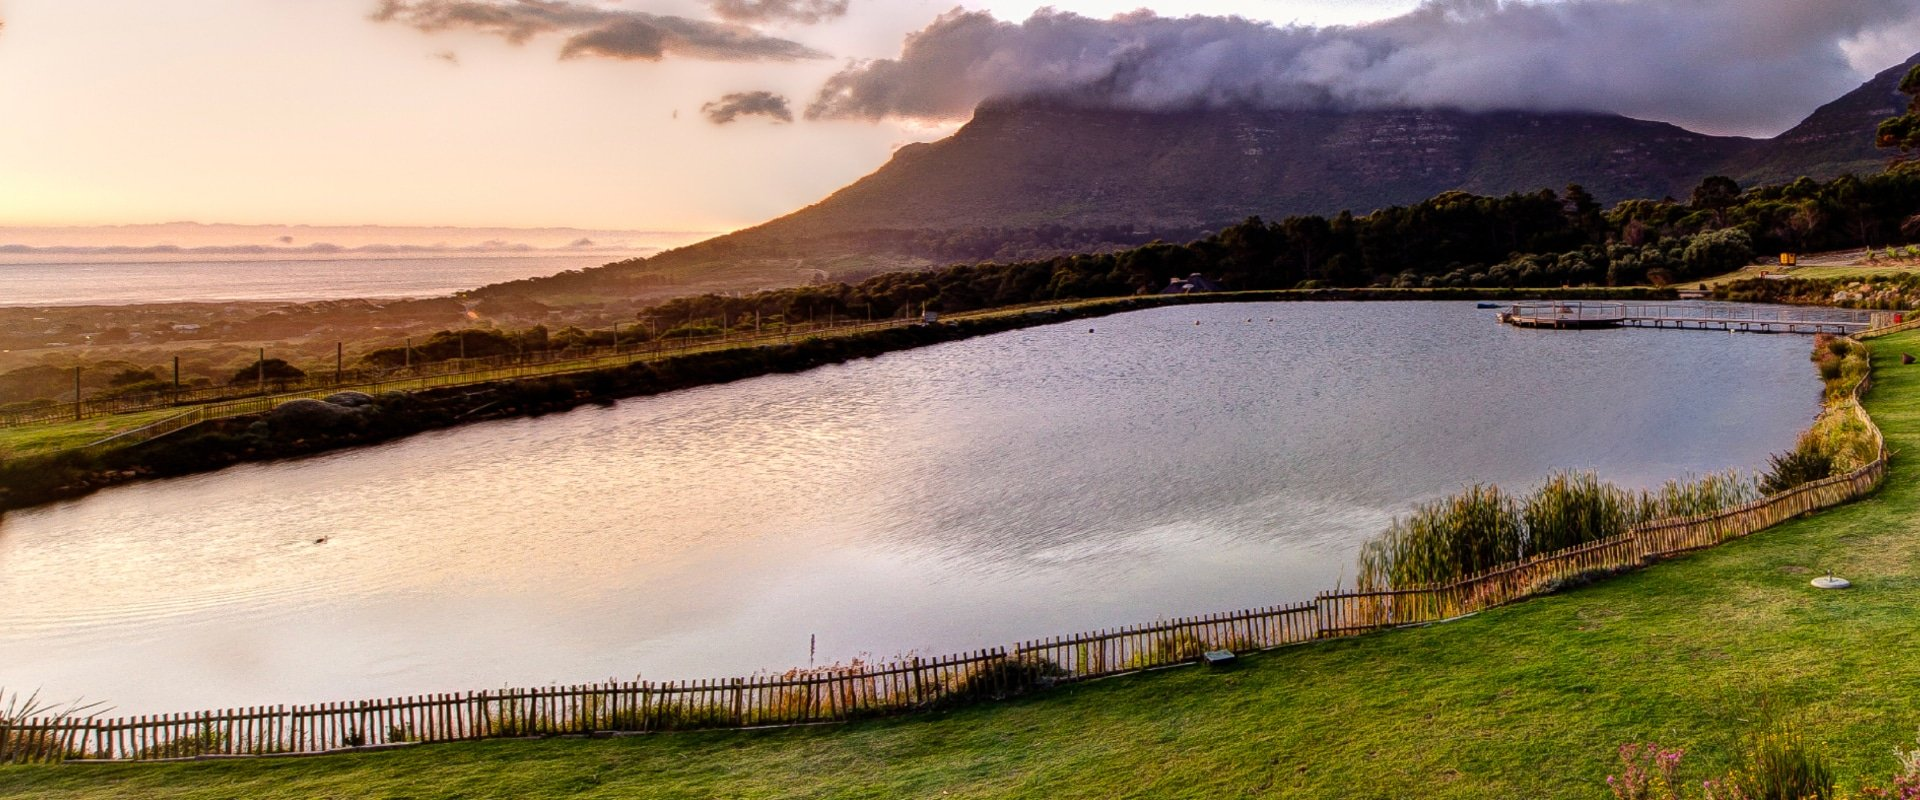 Laze on the lawns and enjoy the best vineyard picnic experience in town